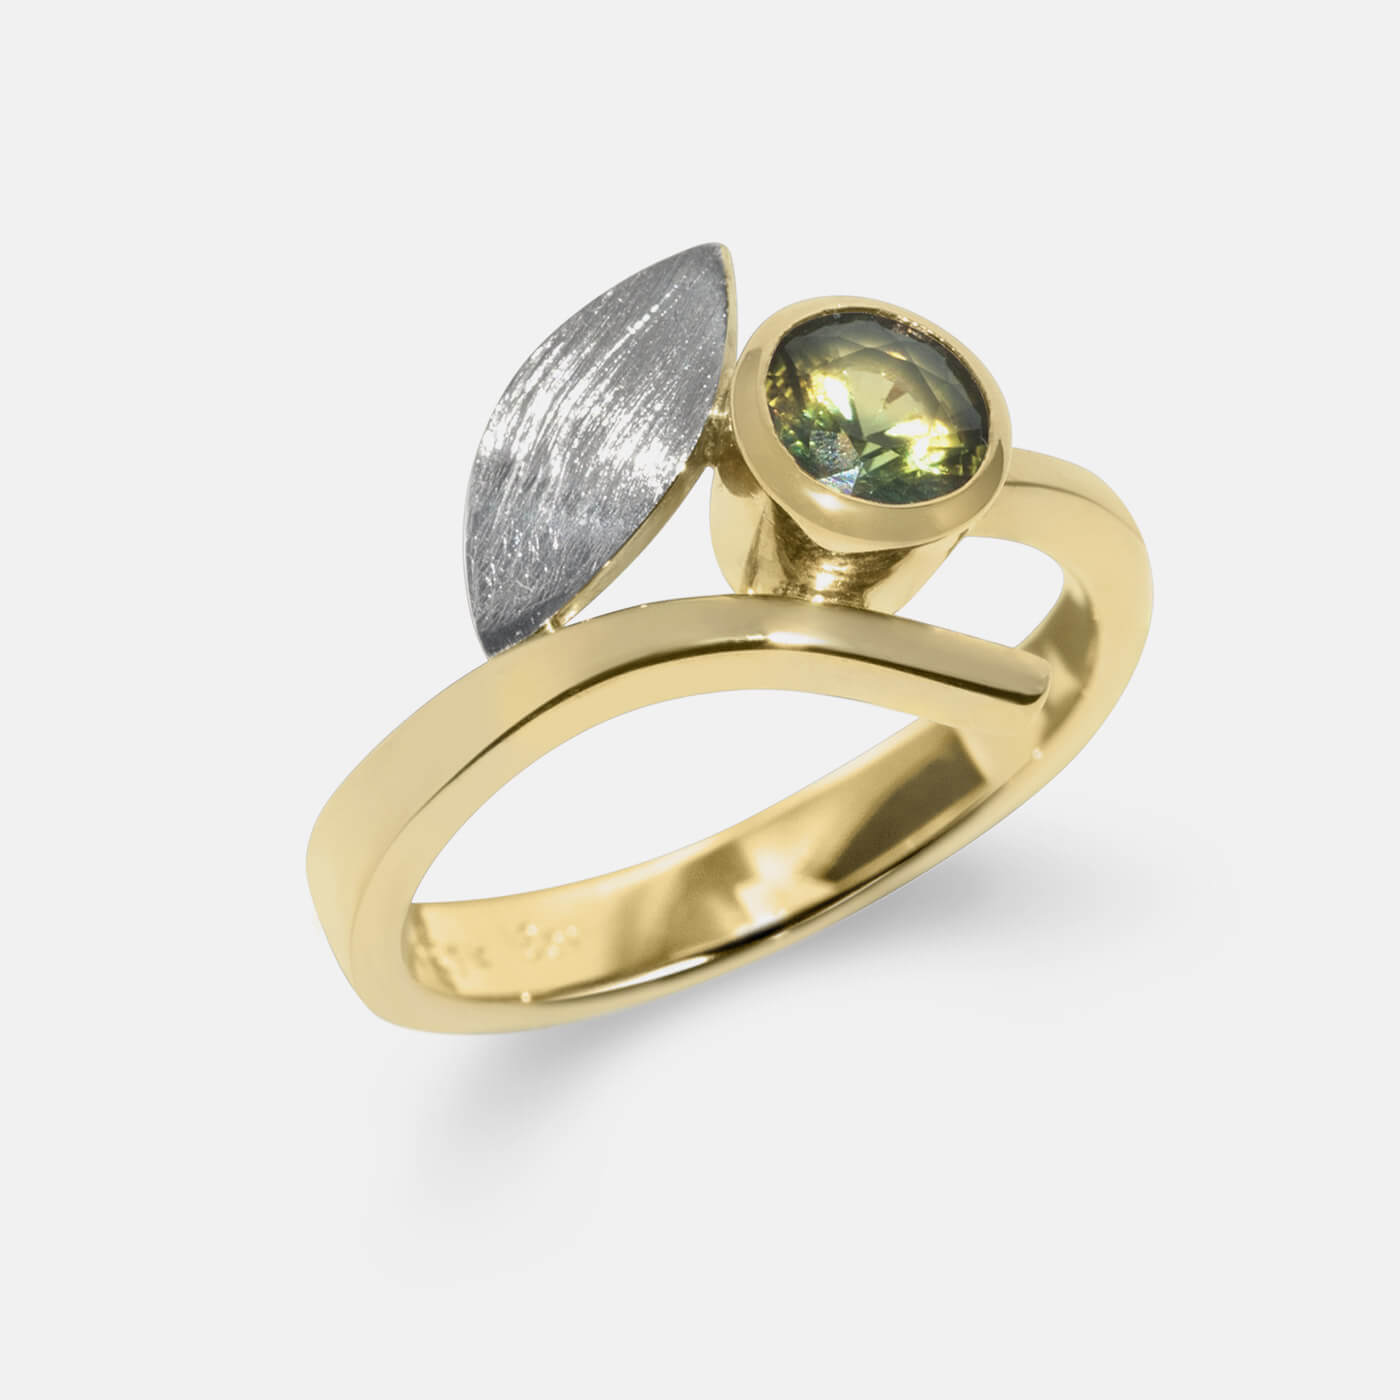 Stylised Leaf Wedding Ring